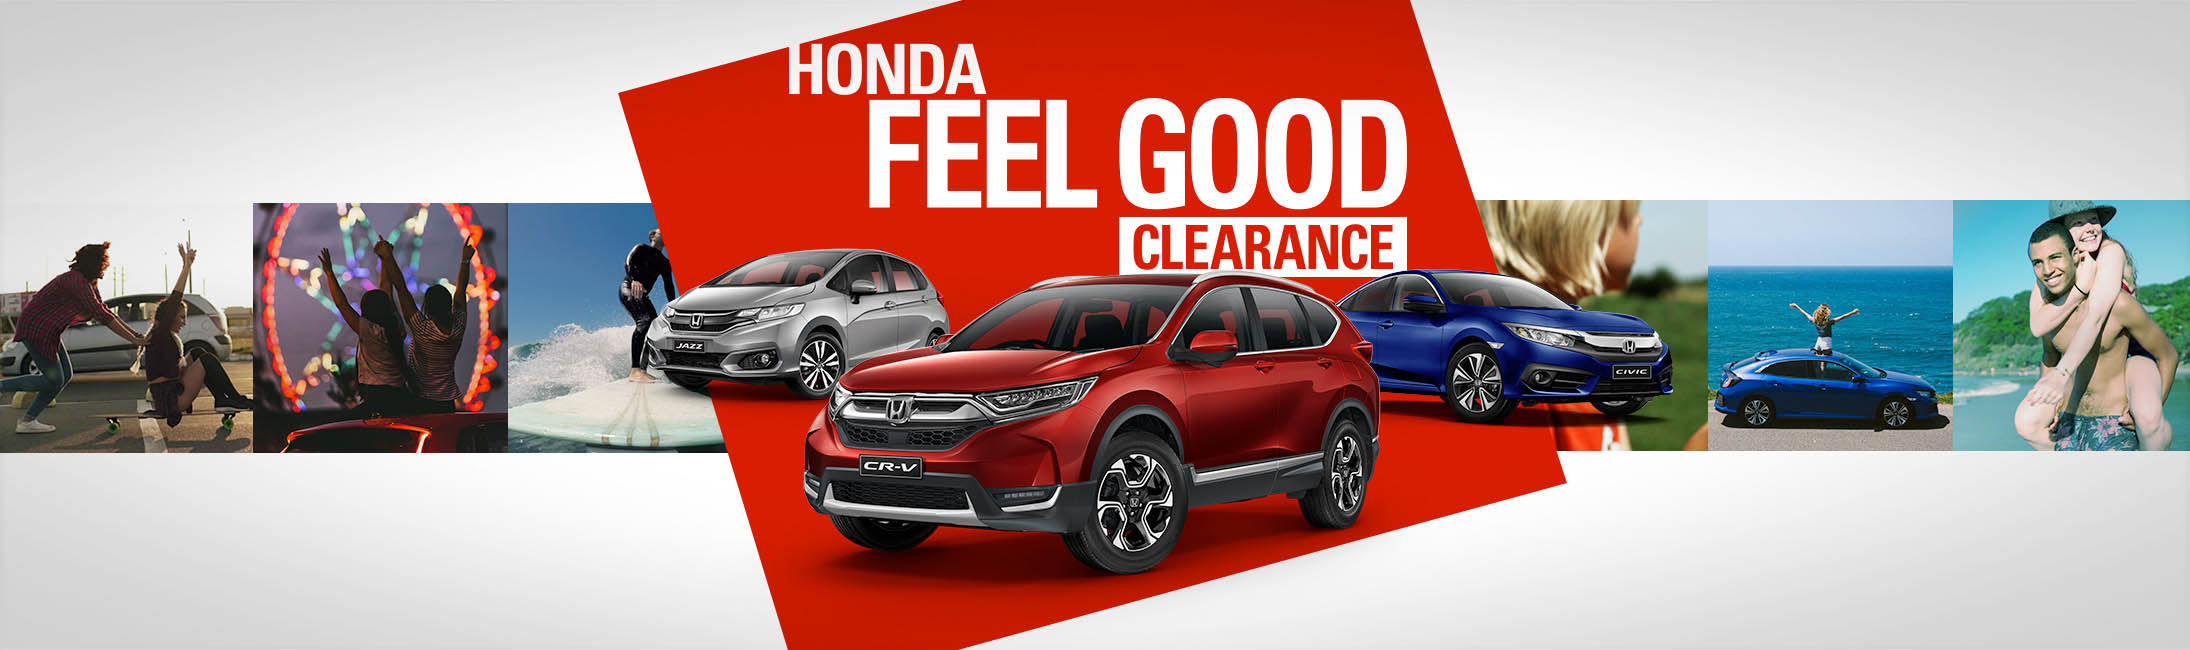 Honda-Feel Good Clearance